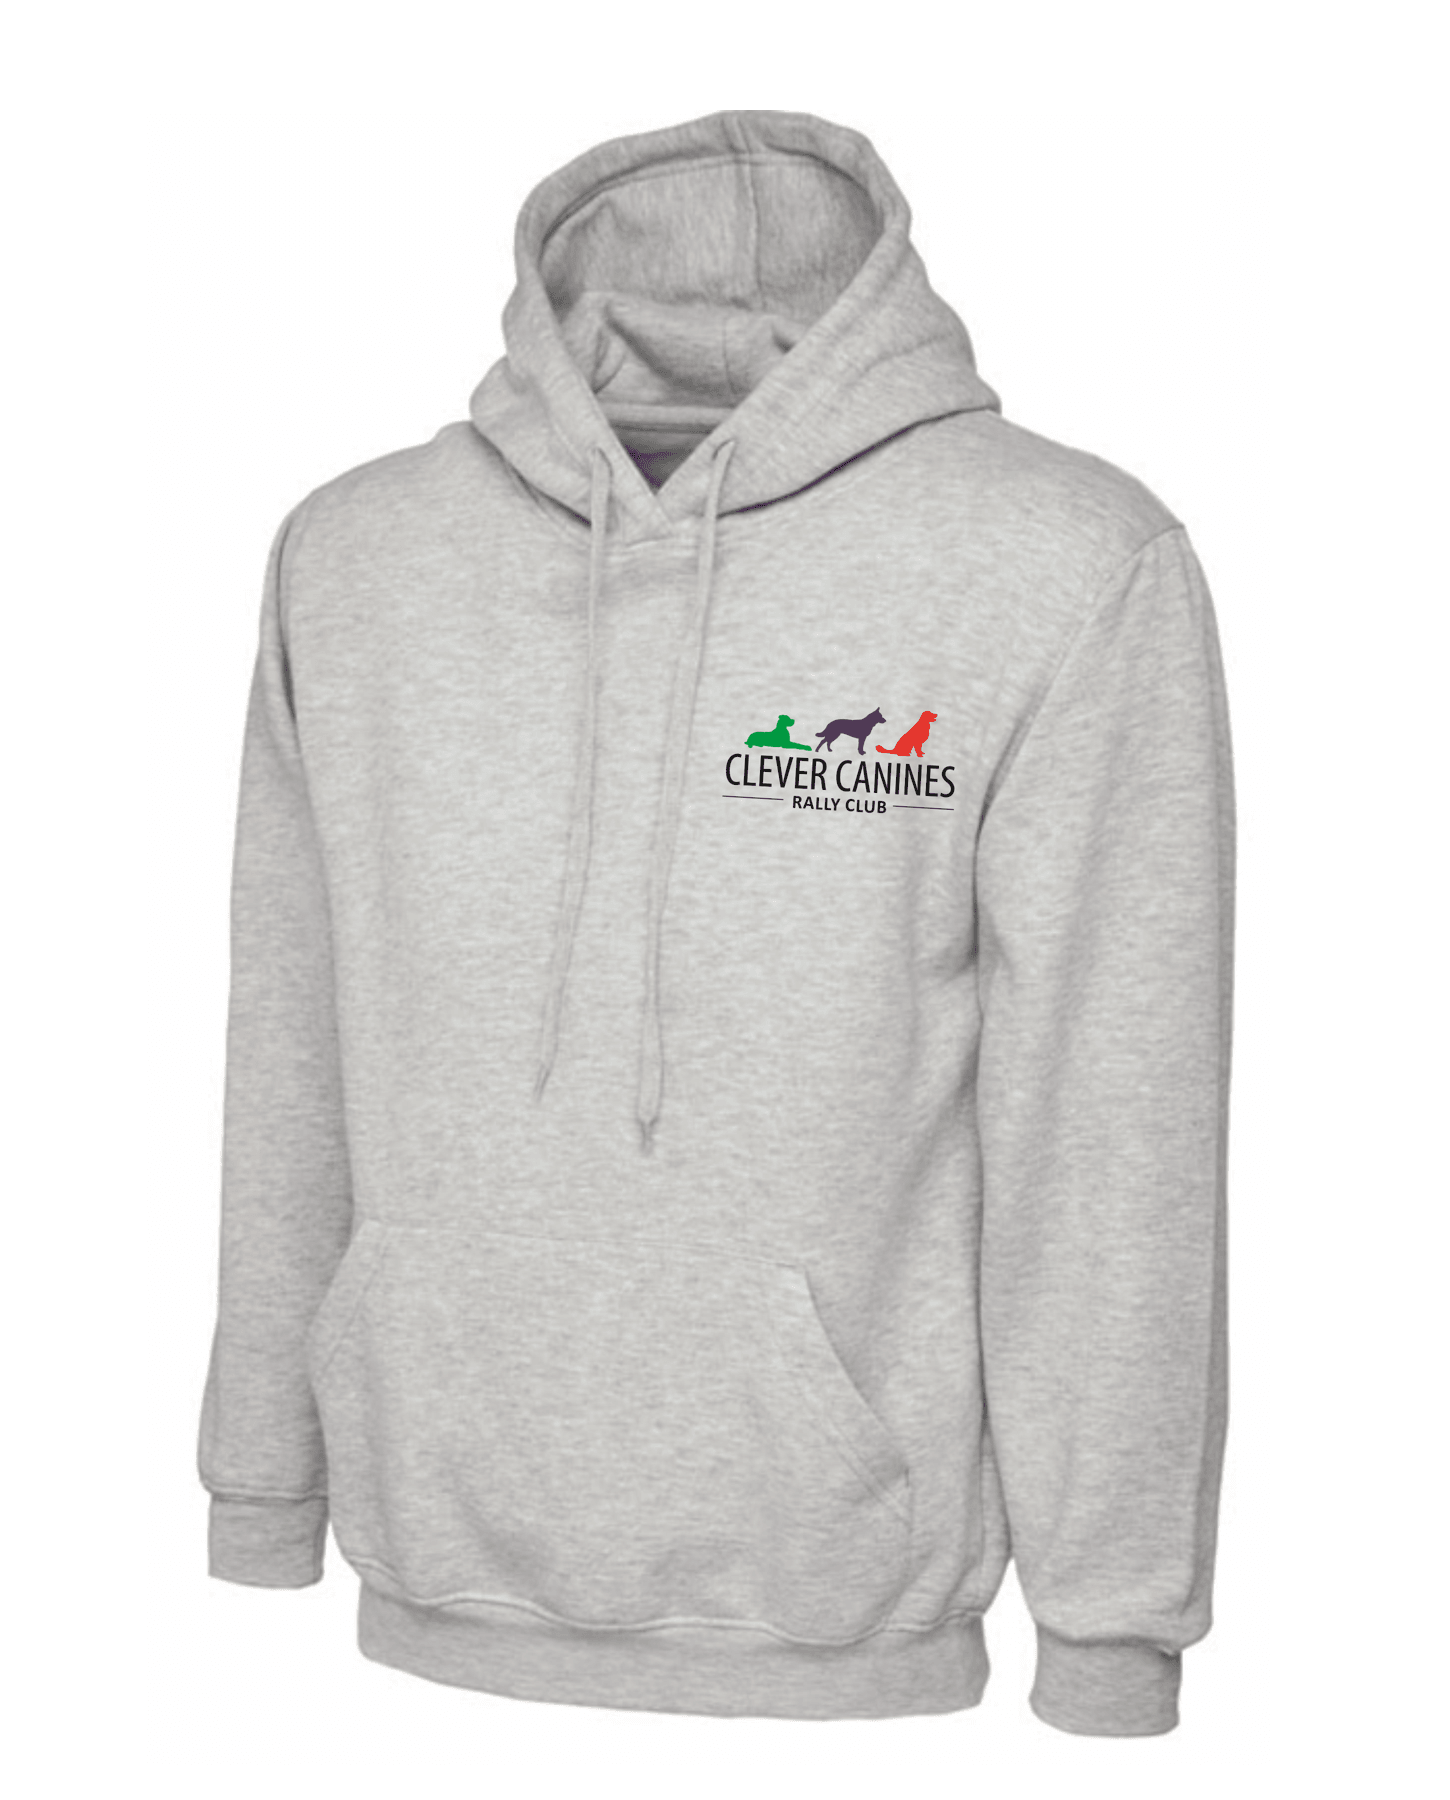 Clever Canines Rally Club Unisex Hoodie